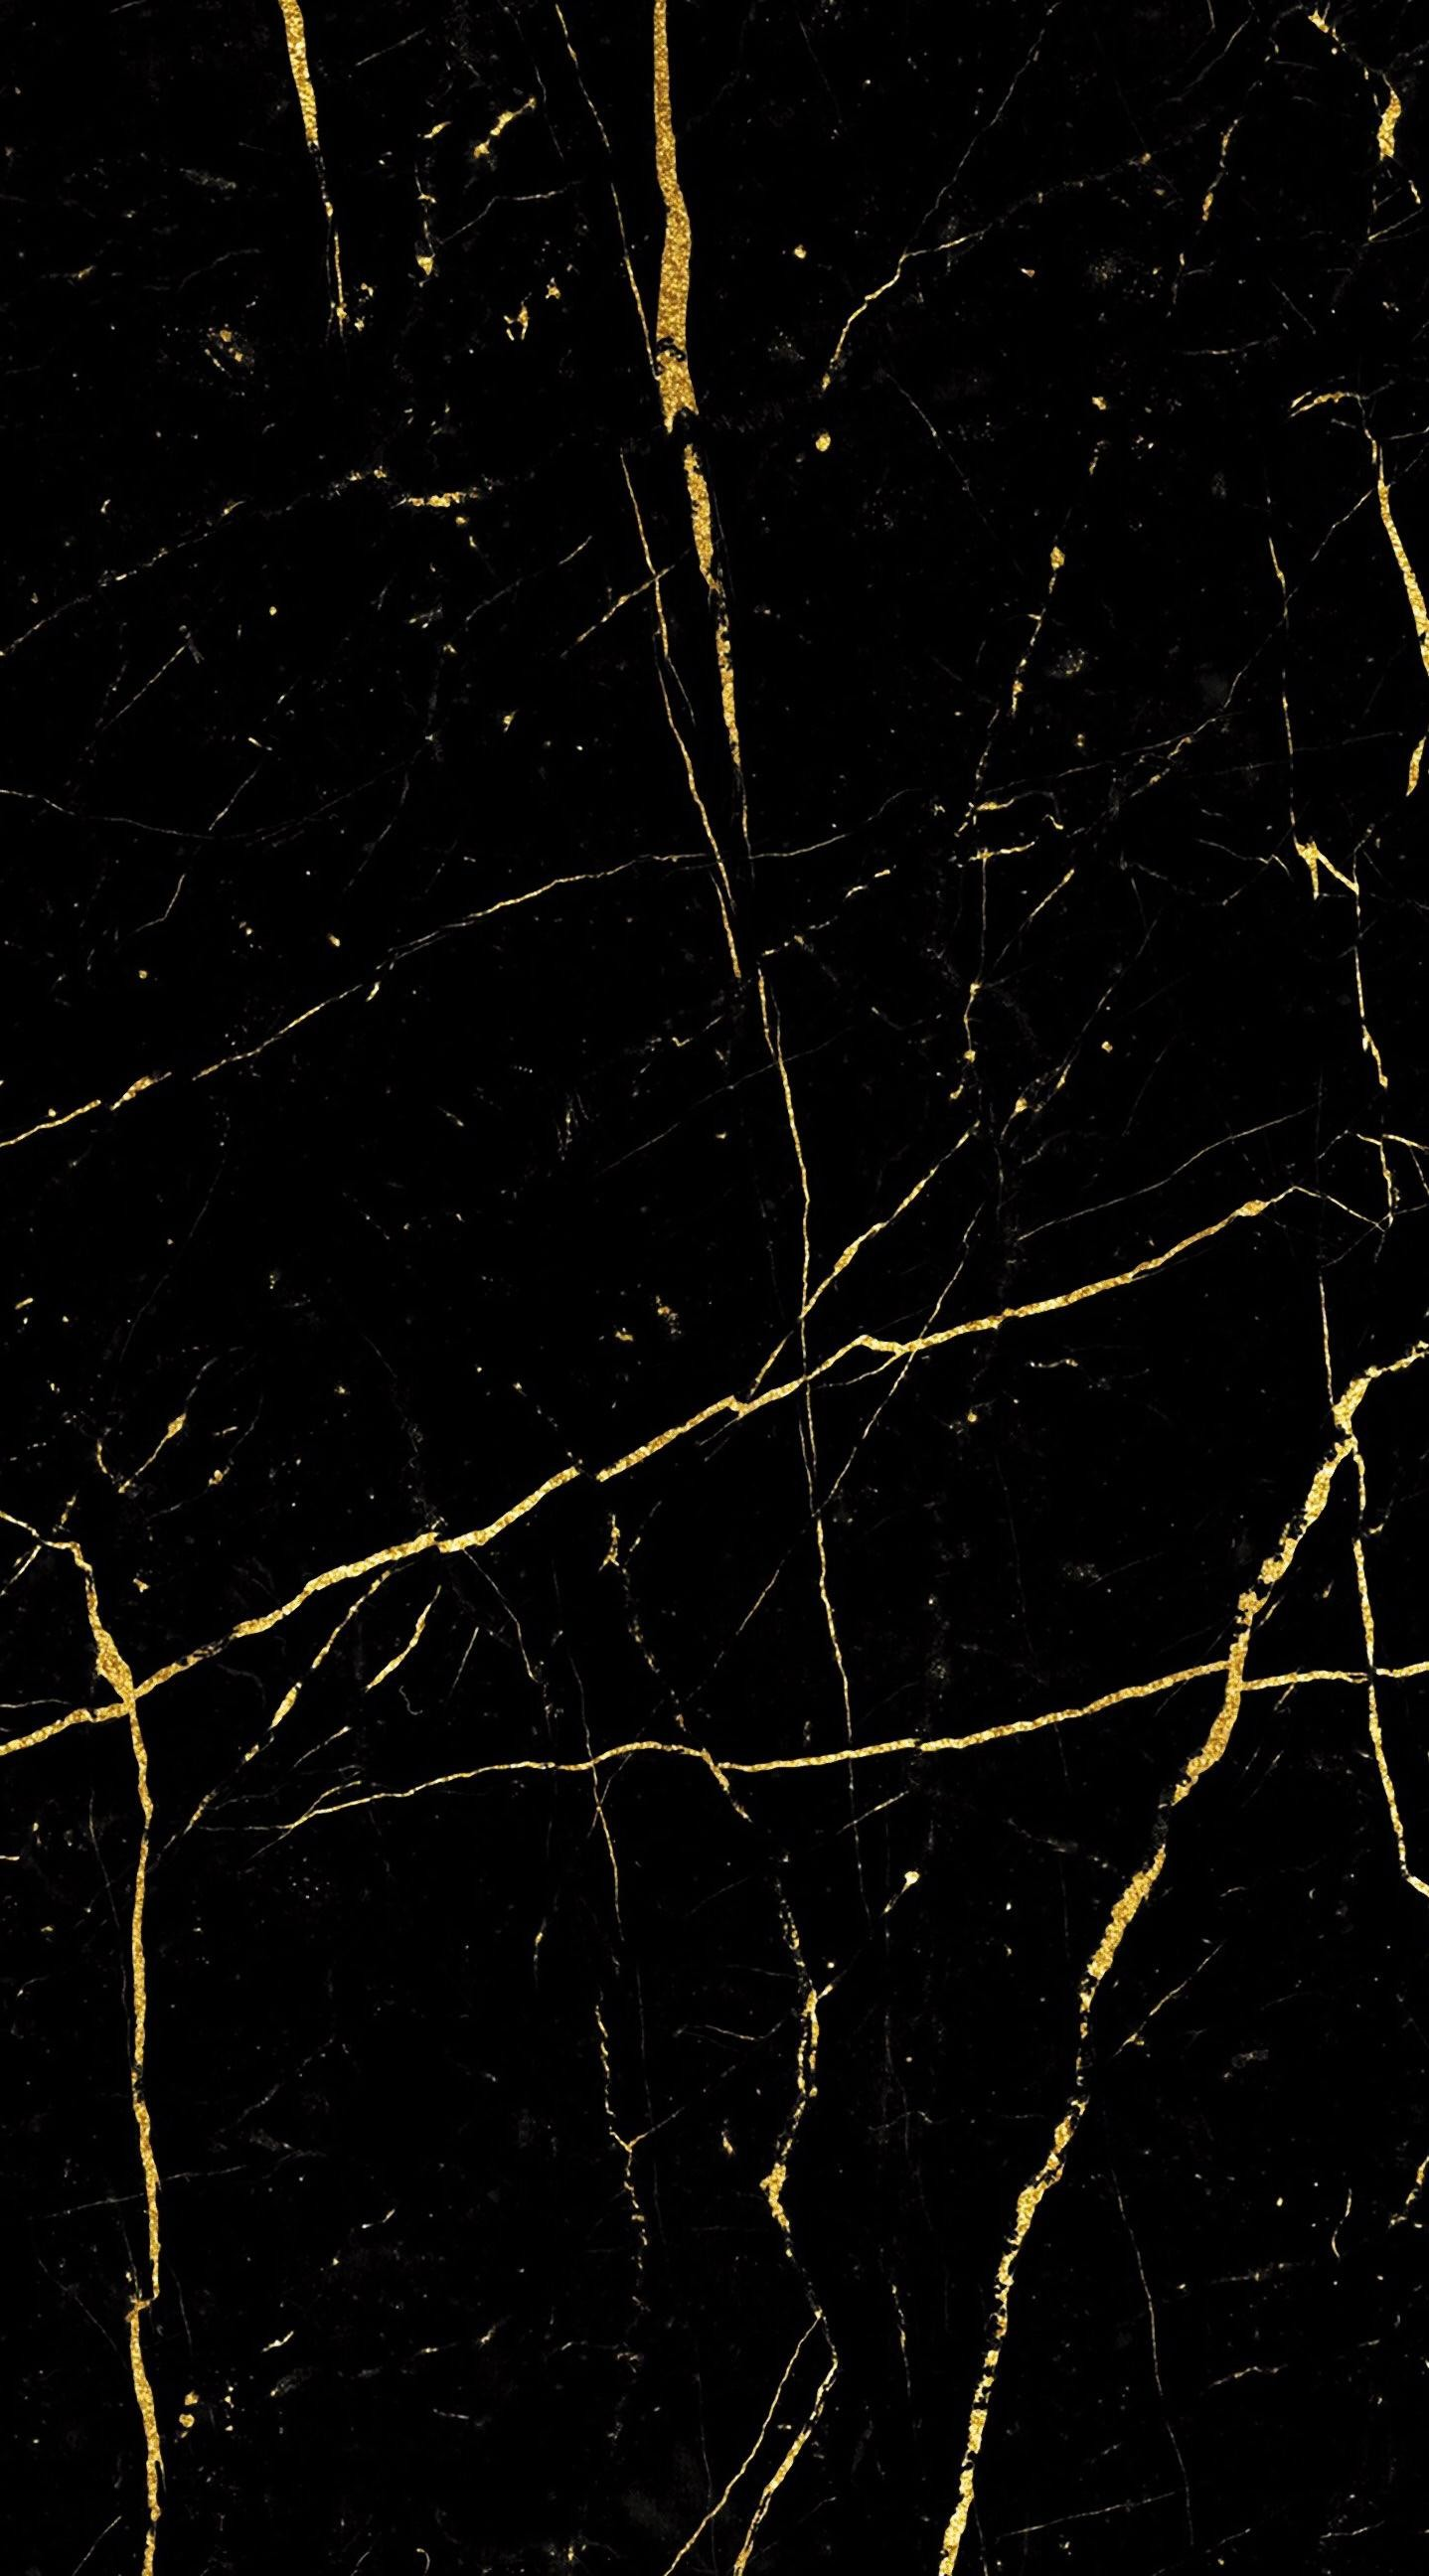 Black And Gold Desktop Wallpaper 78 Images